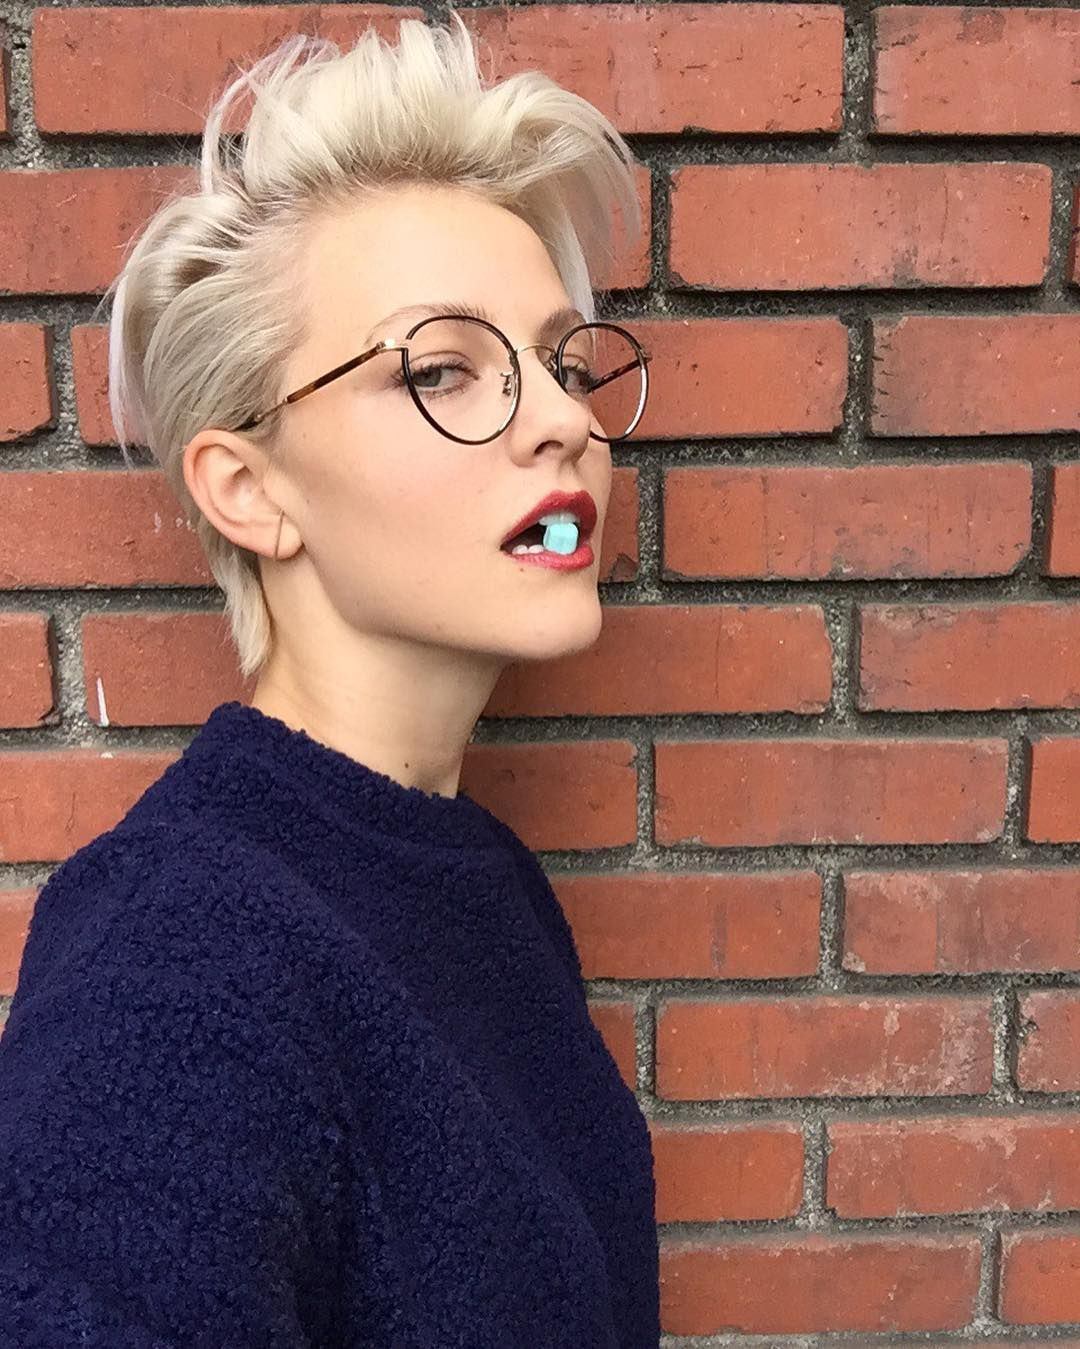 Pin by shannon subers on style inspo pinterest short hair girls